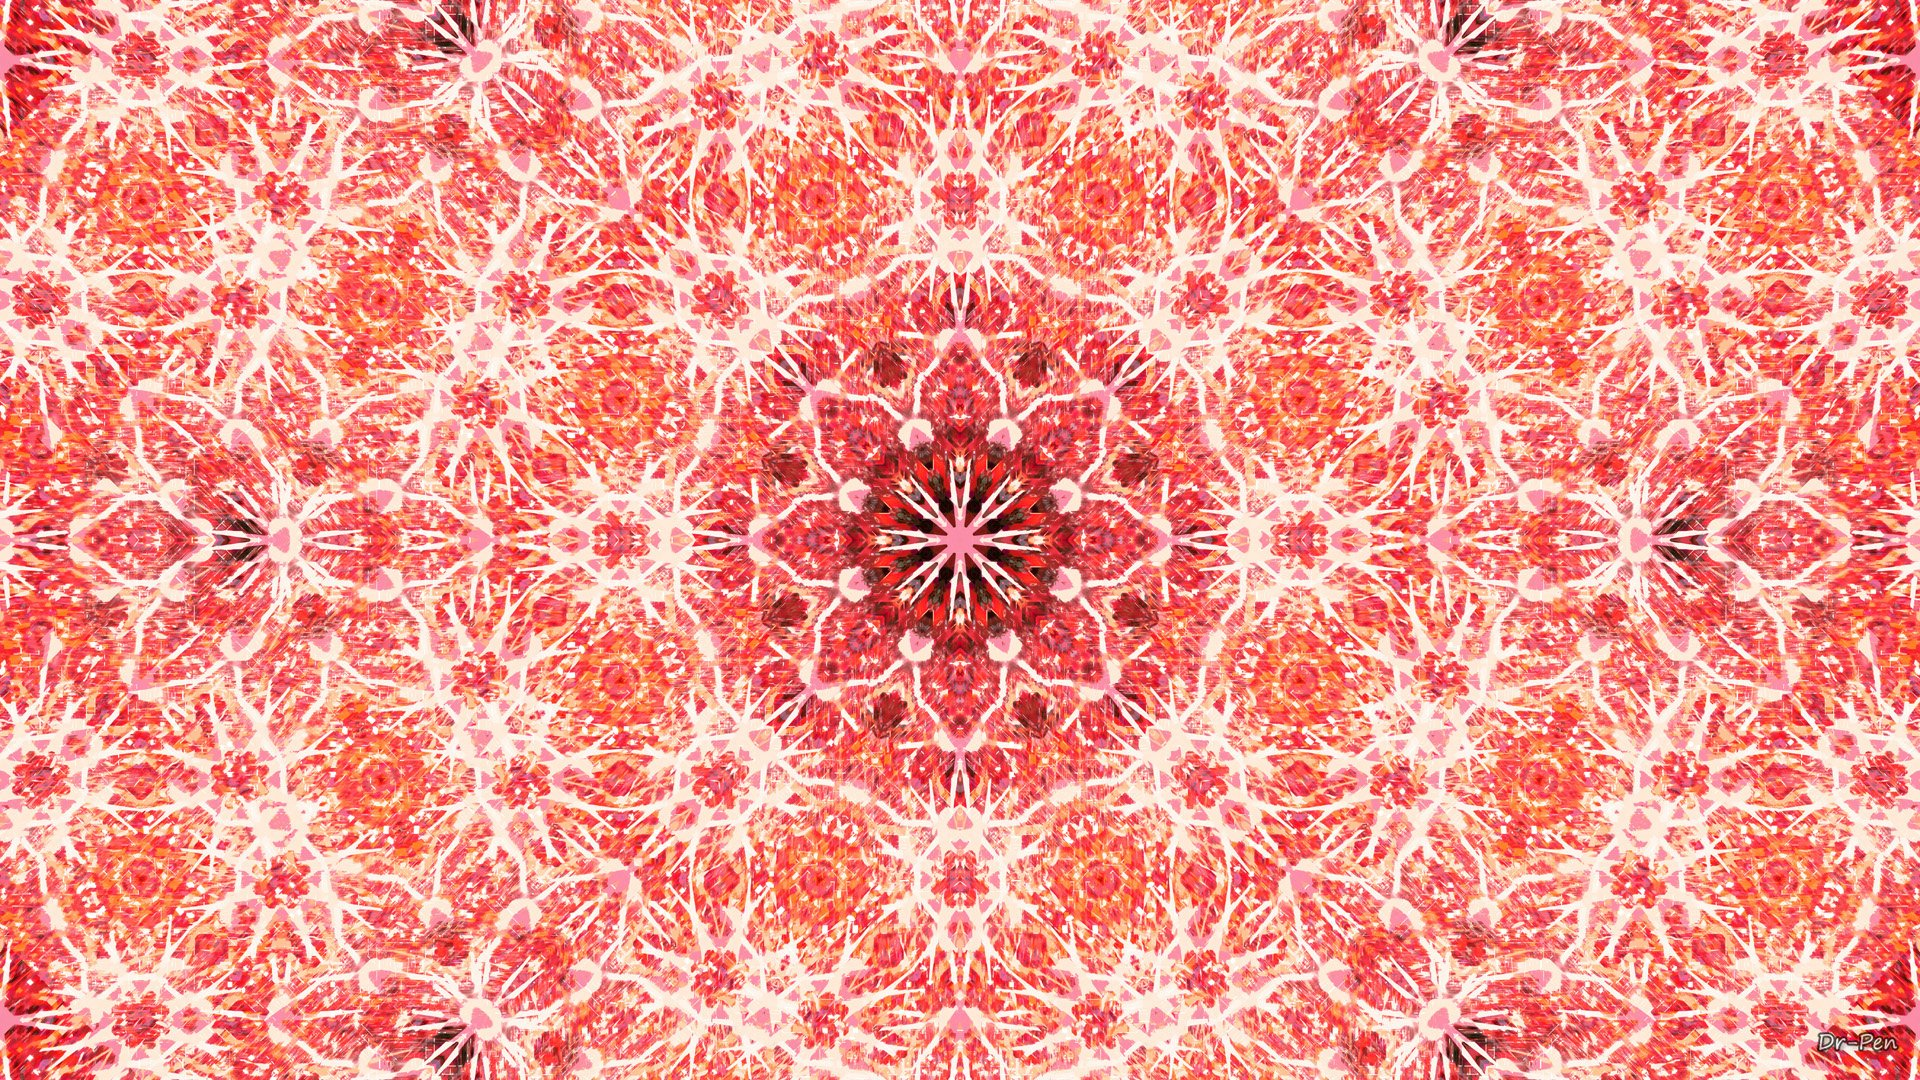 Wallpapers Abstractos Hd Red Flower Mandala Hd Wallpaper Background Image